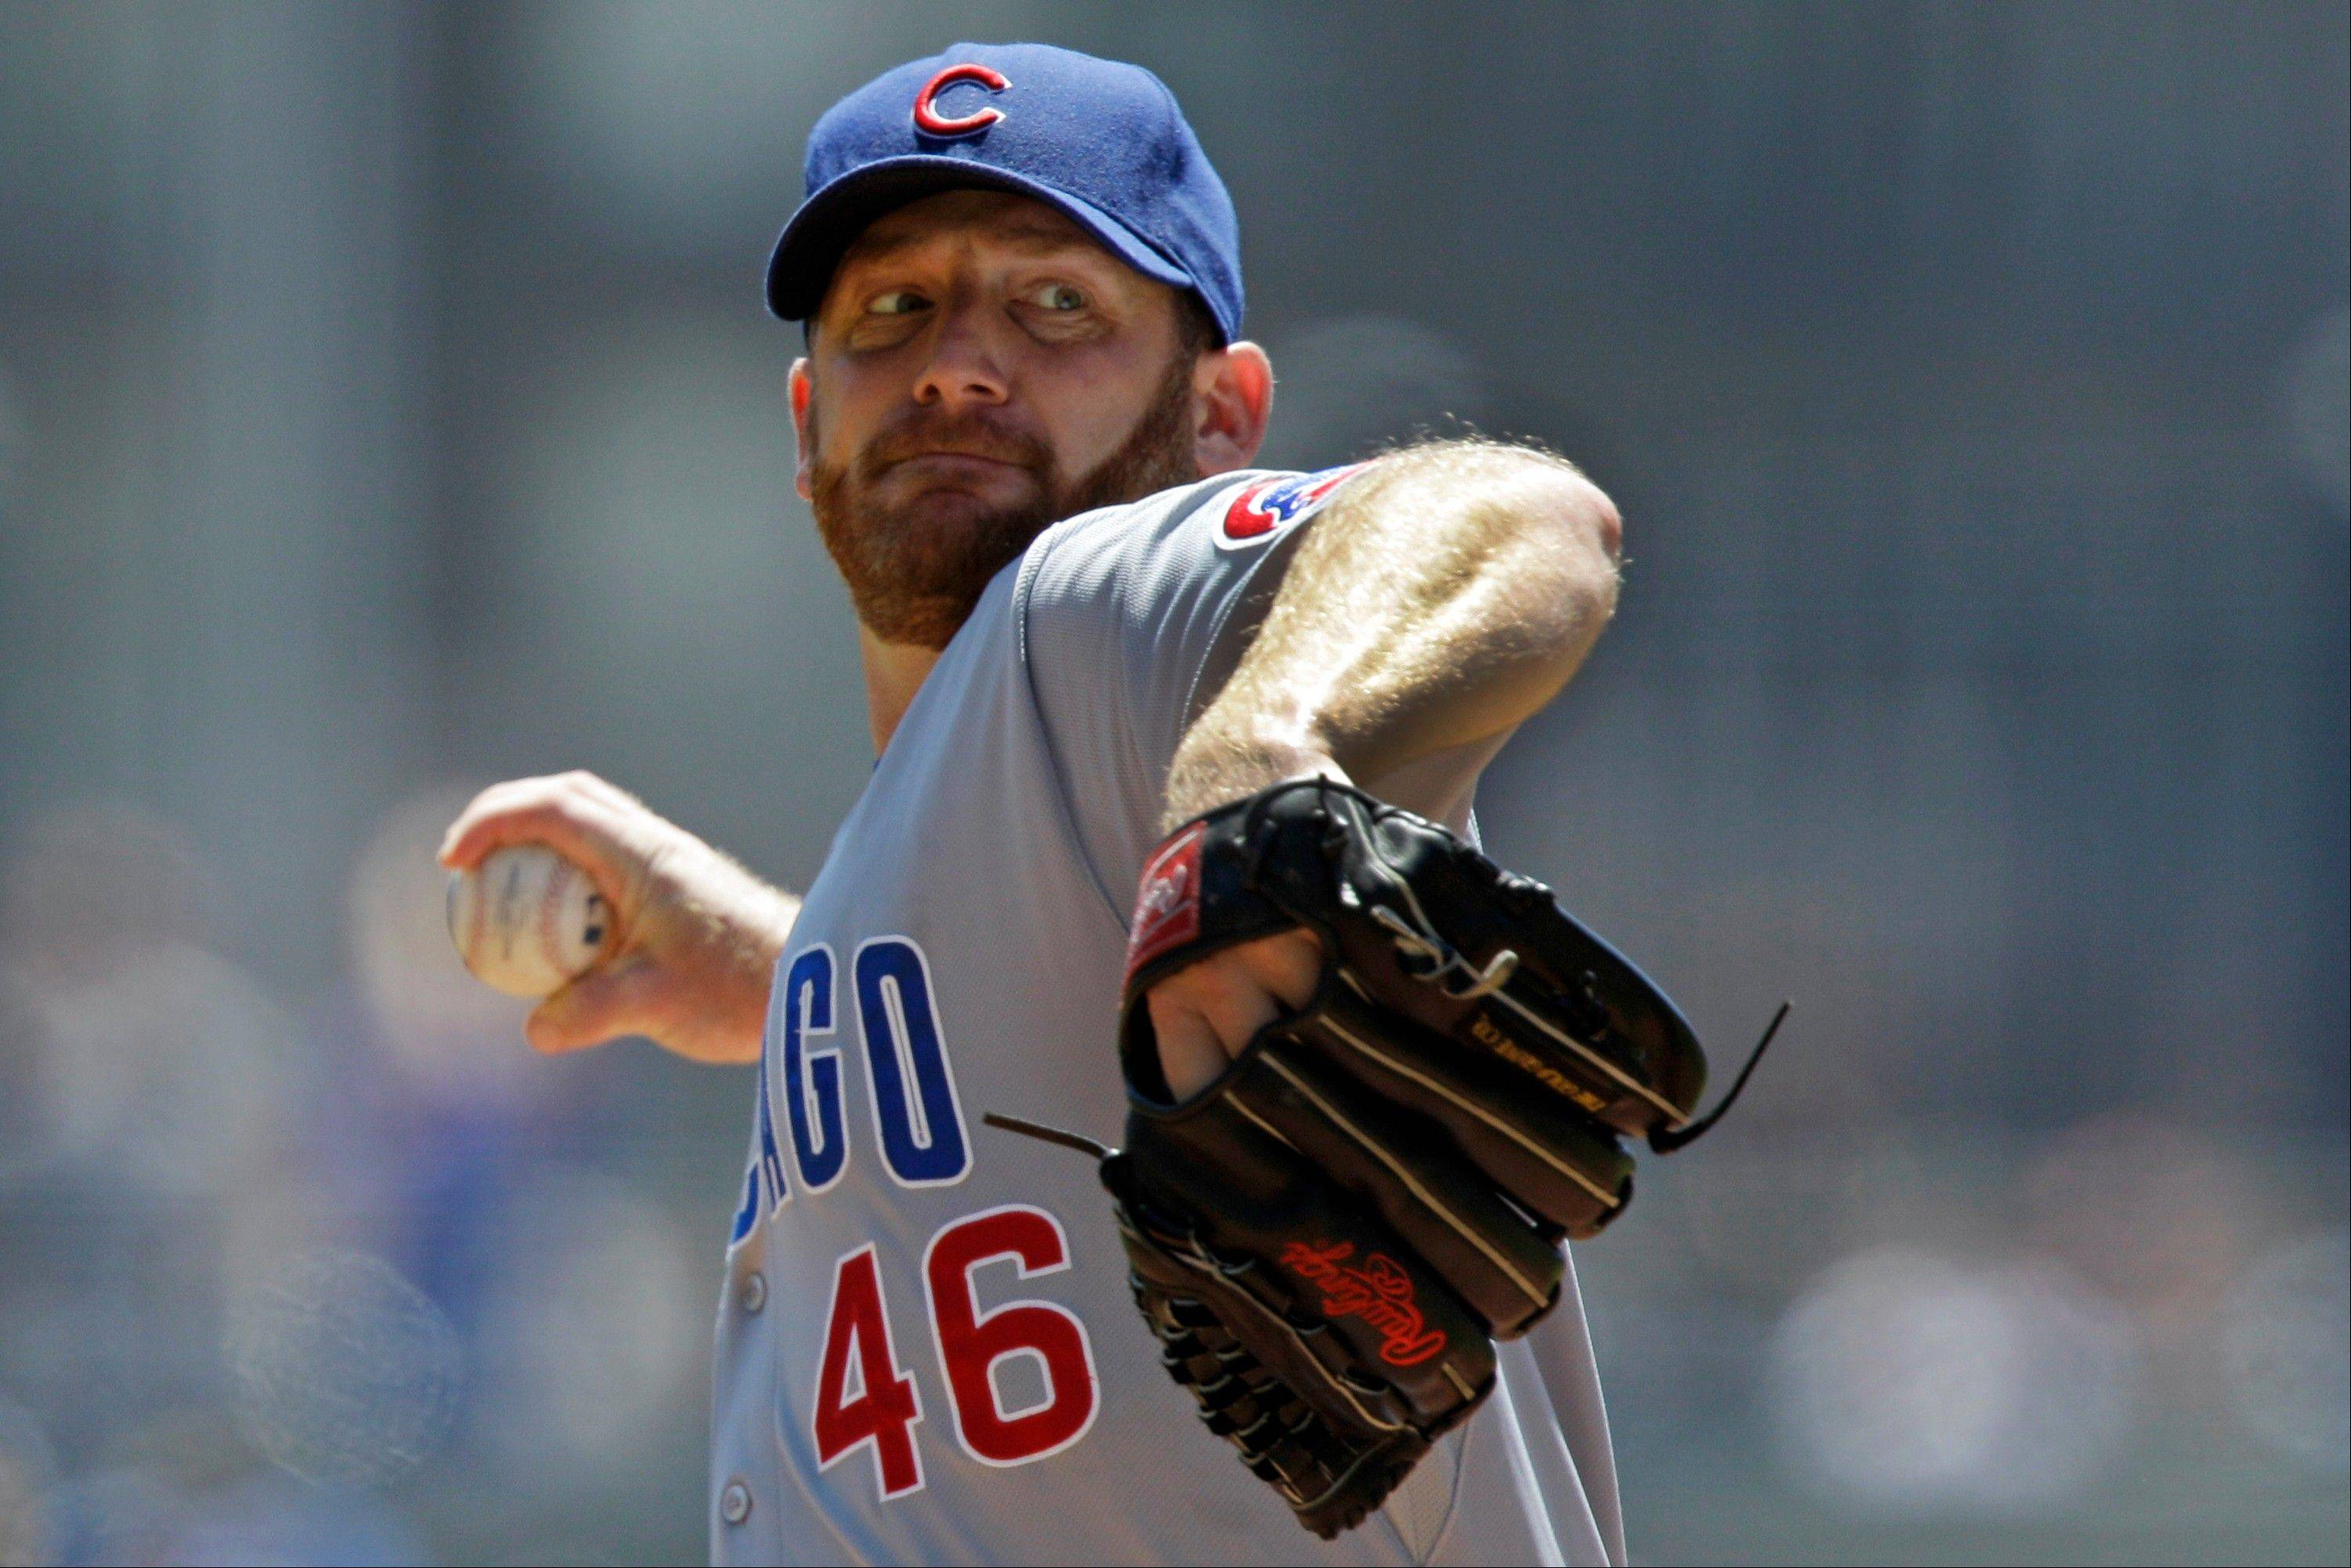 Cubs finally deal Dempster ... to Rangers